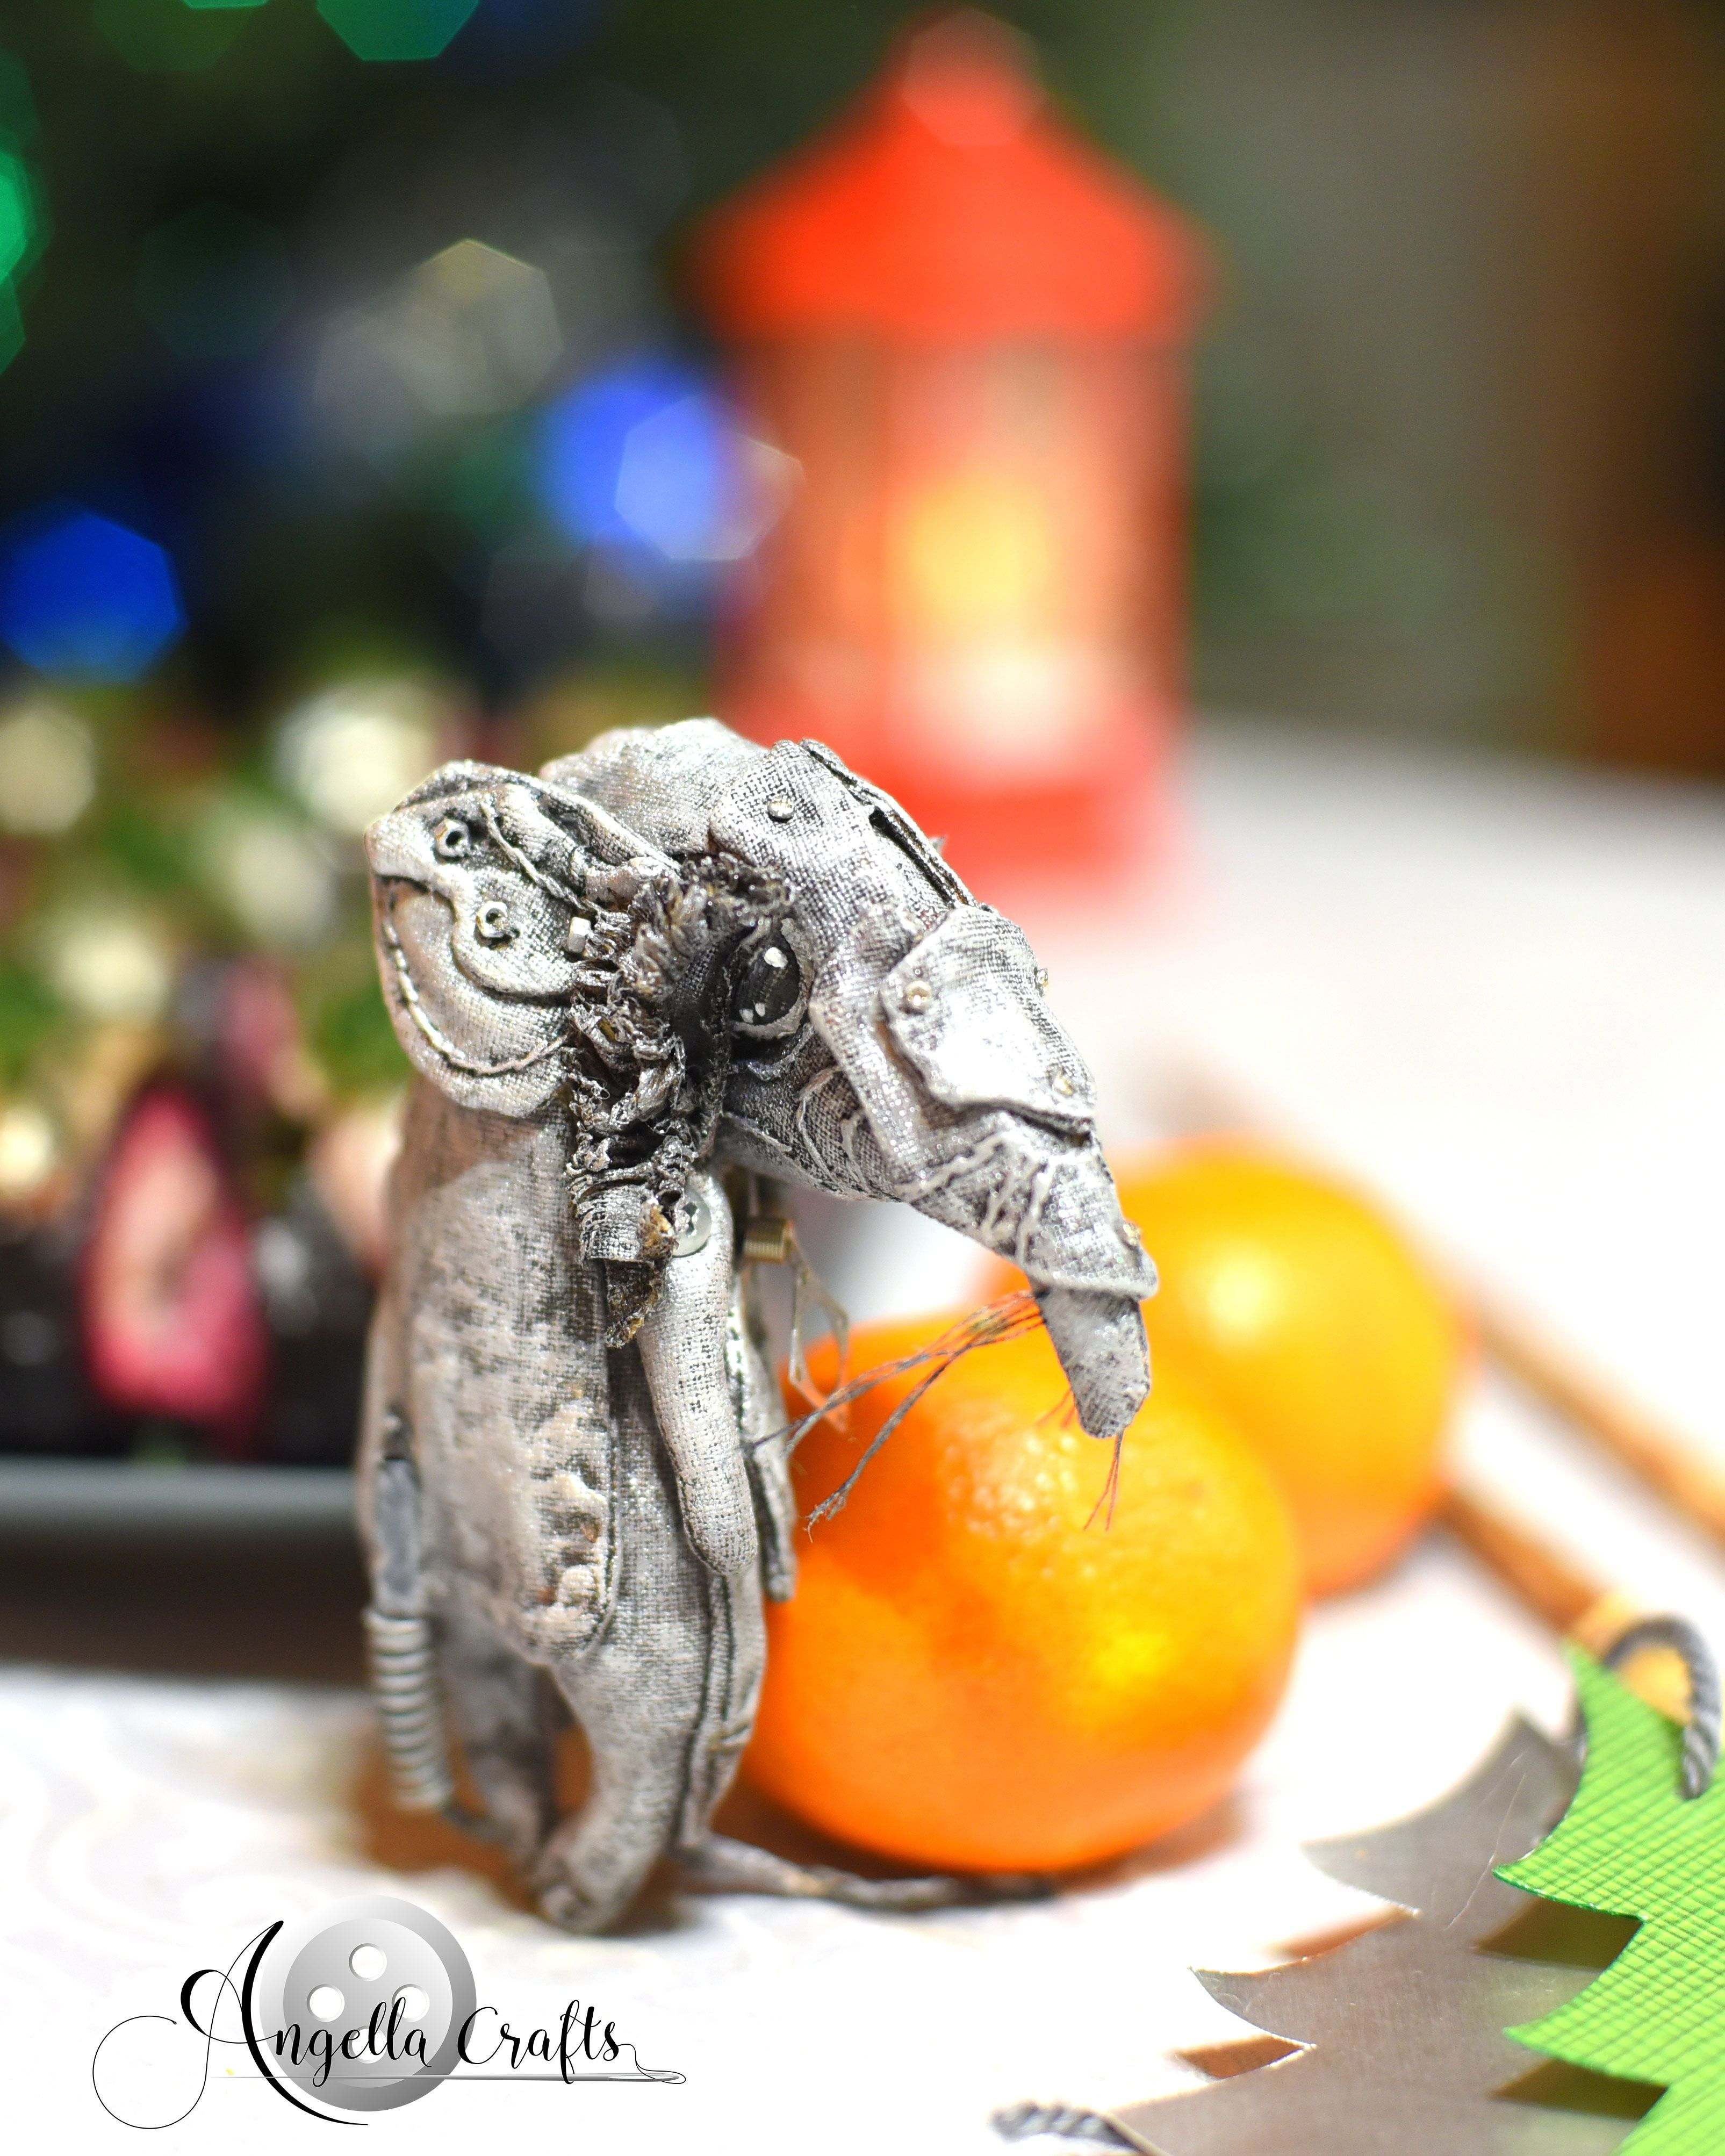 Rearview Mirror New Year 2020 -2019 Christmas Our first christmas. Metal rat   symbol new year 2020. Gray rat